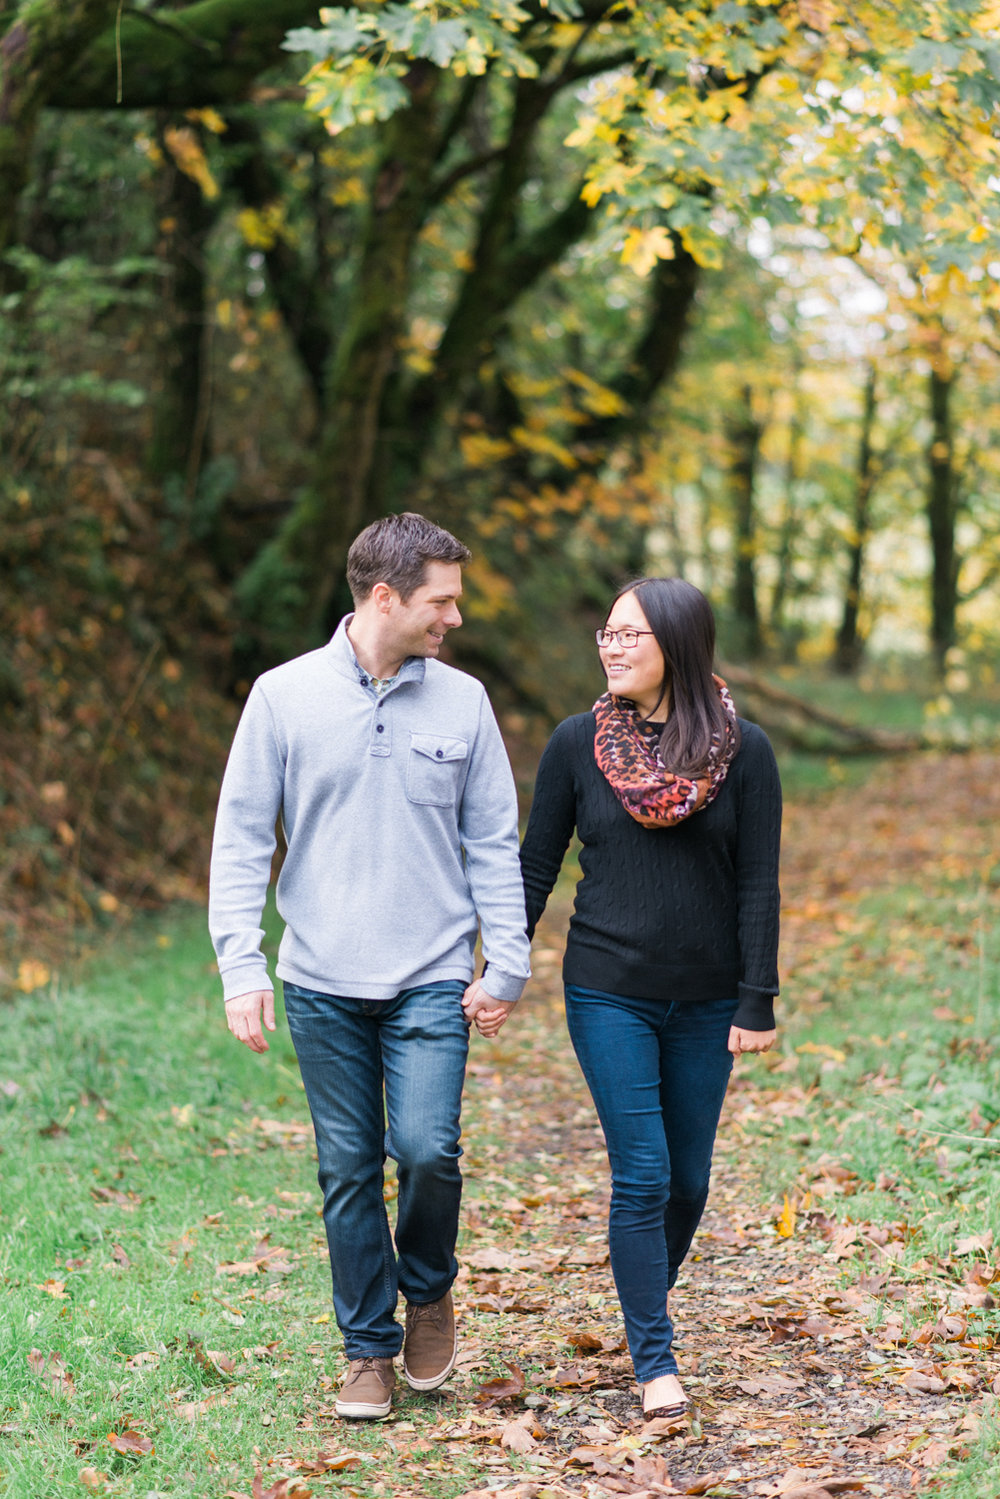 portland-engagement-columbia-river-gorge-latourell-waterfall-autumn-fall-crown-point-shelley-marie-photo-06.jpg